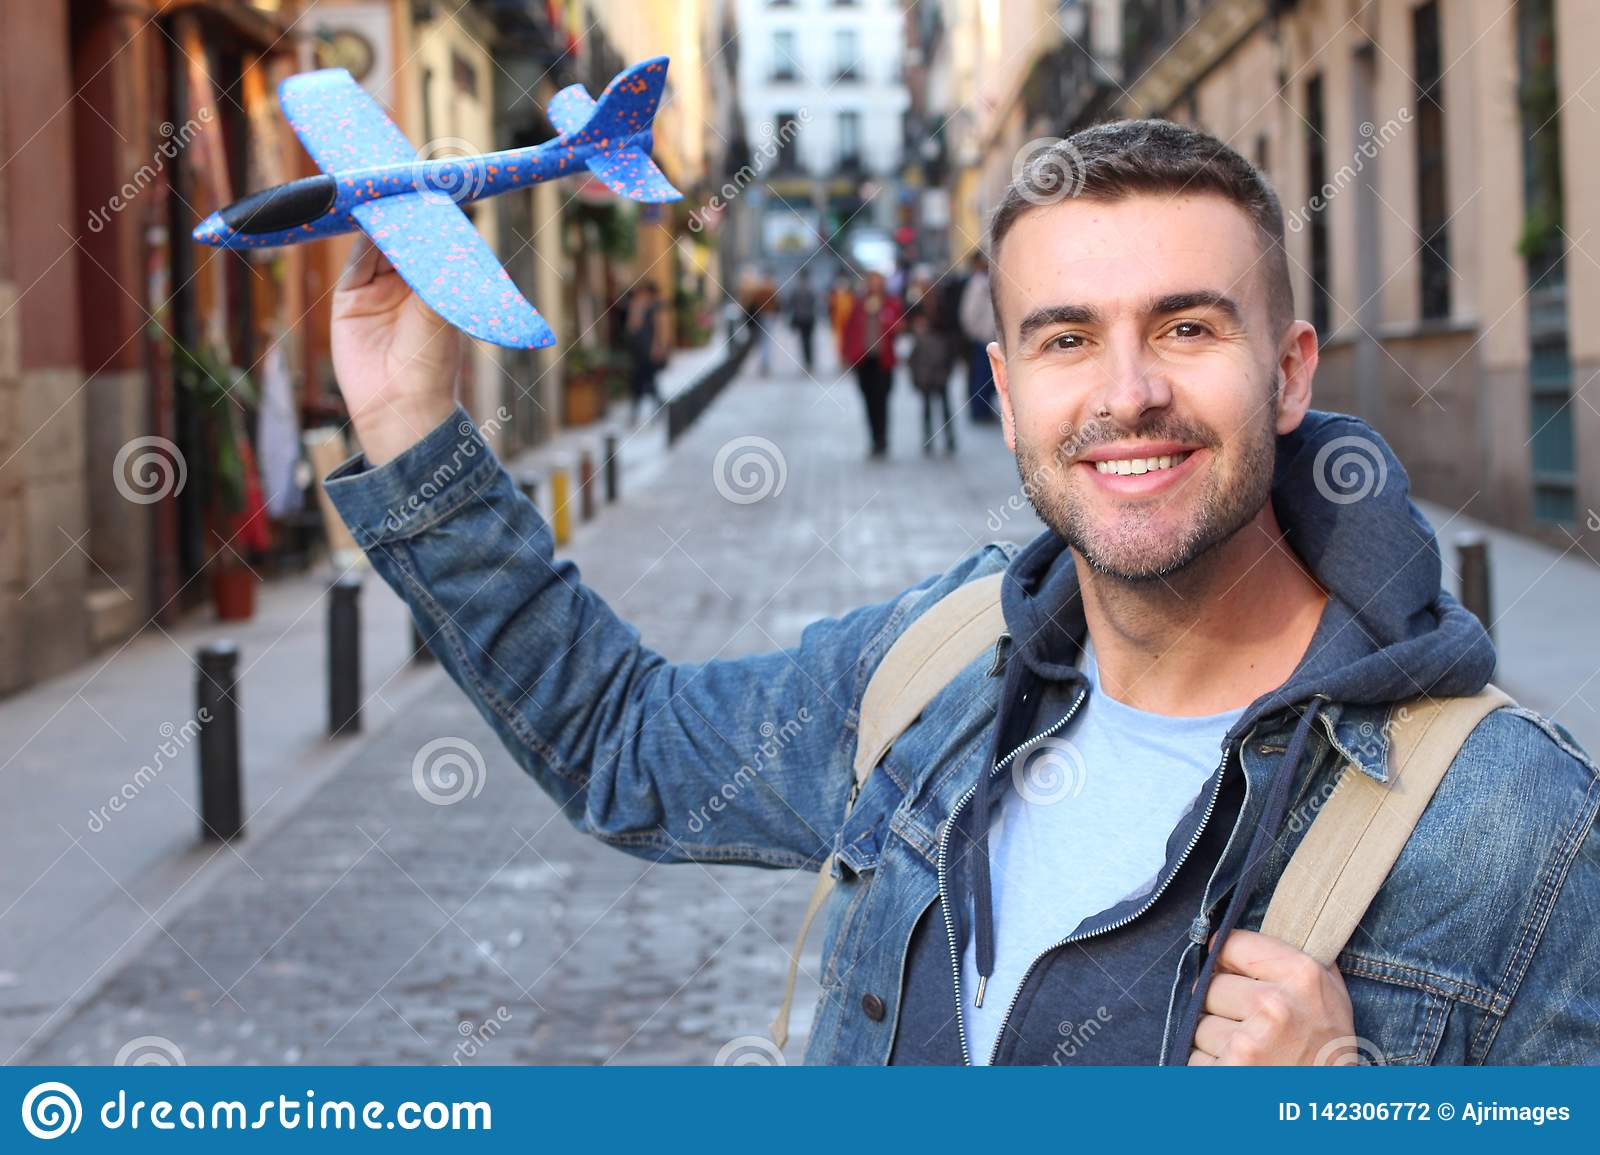 Cute man holding a toy airplane